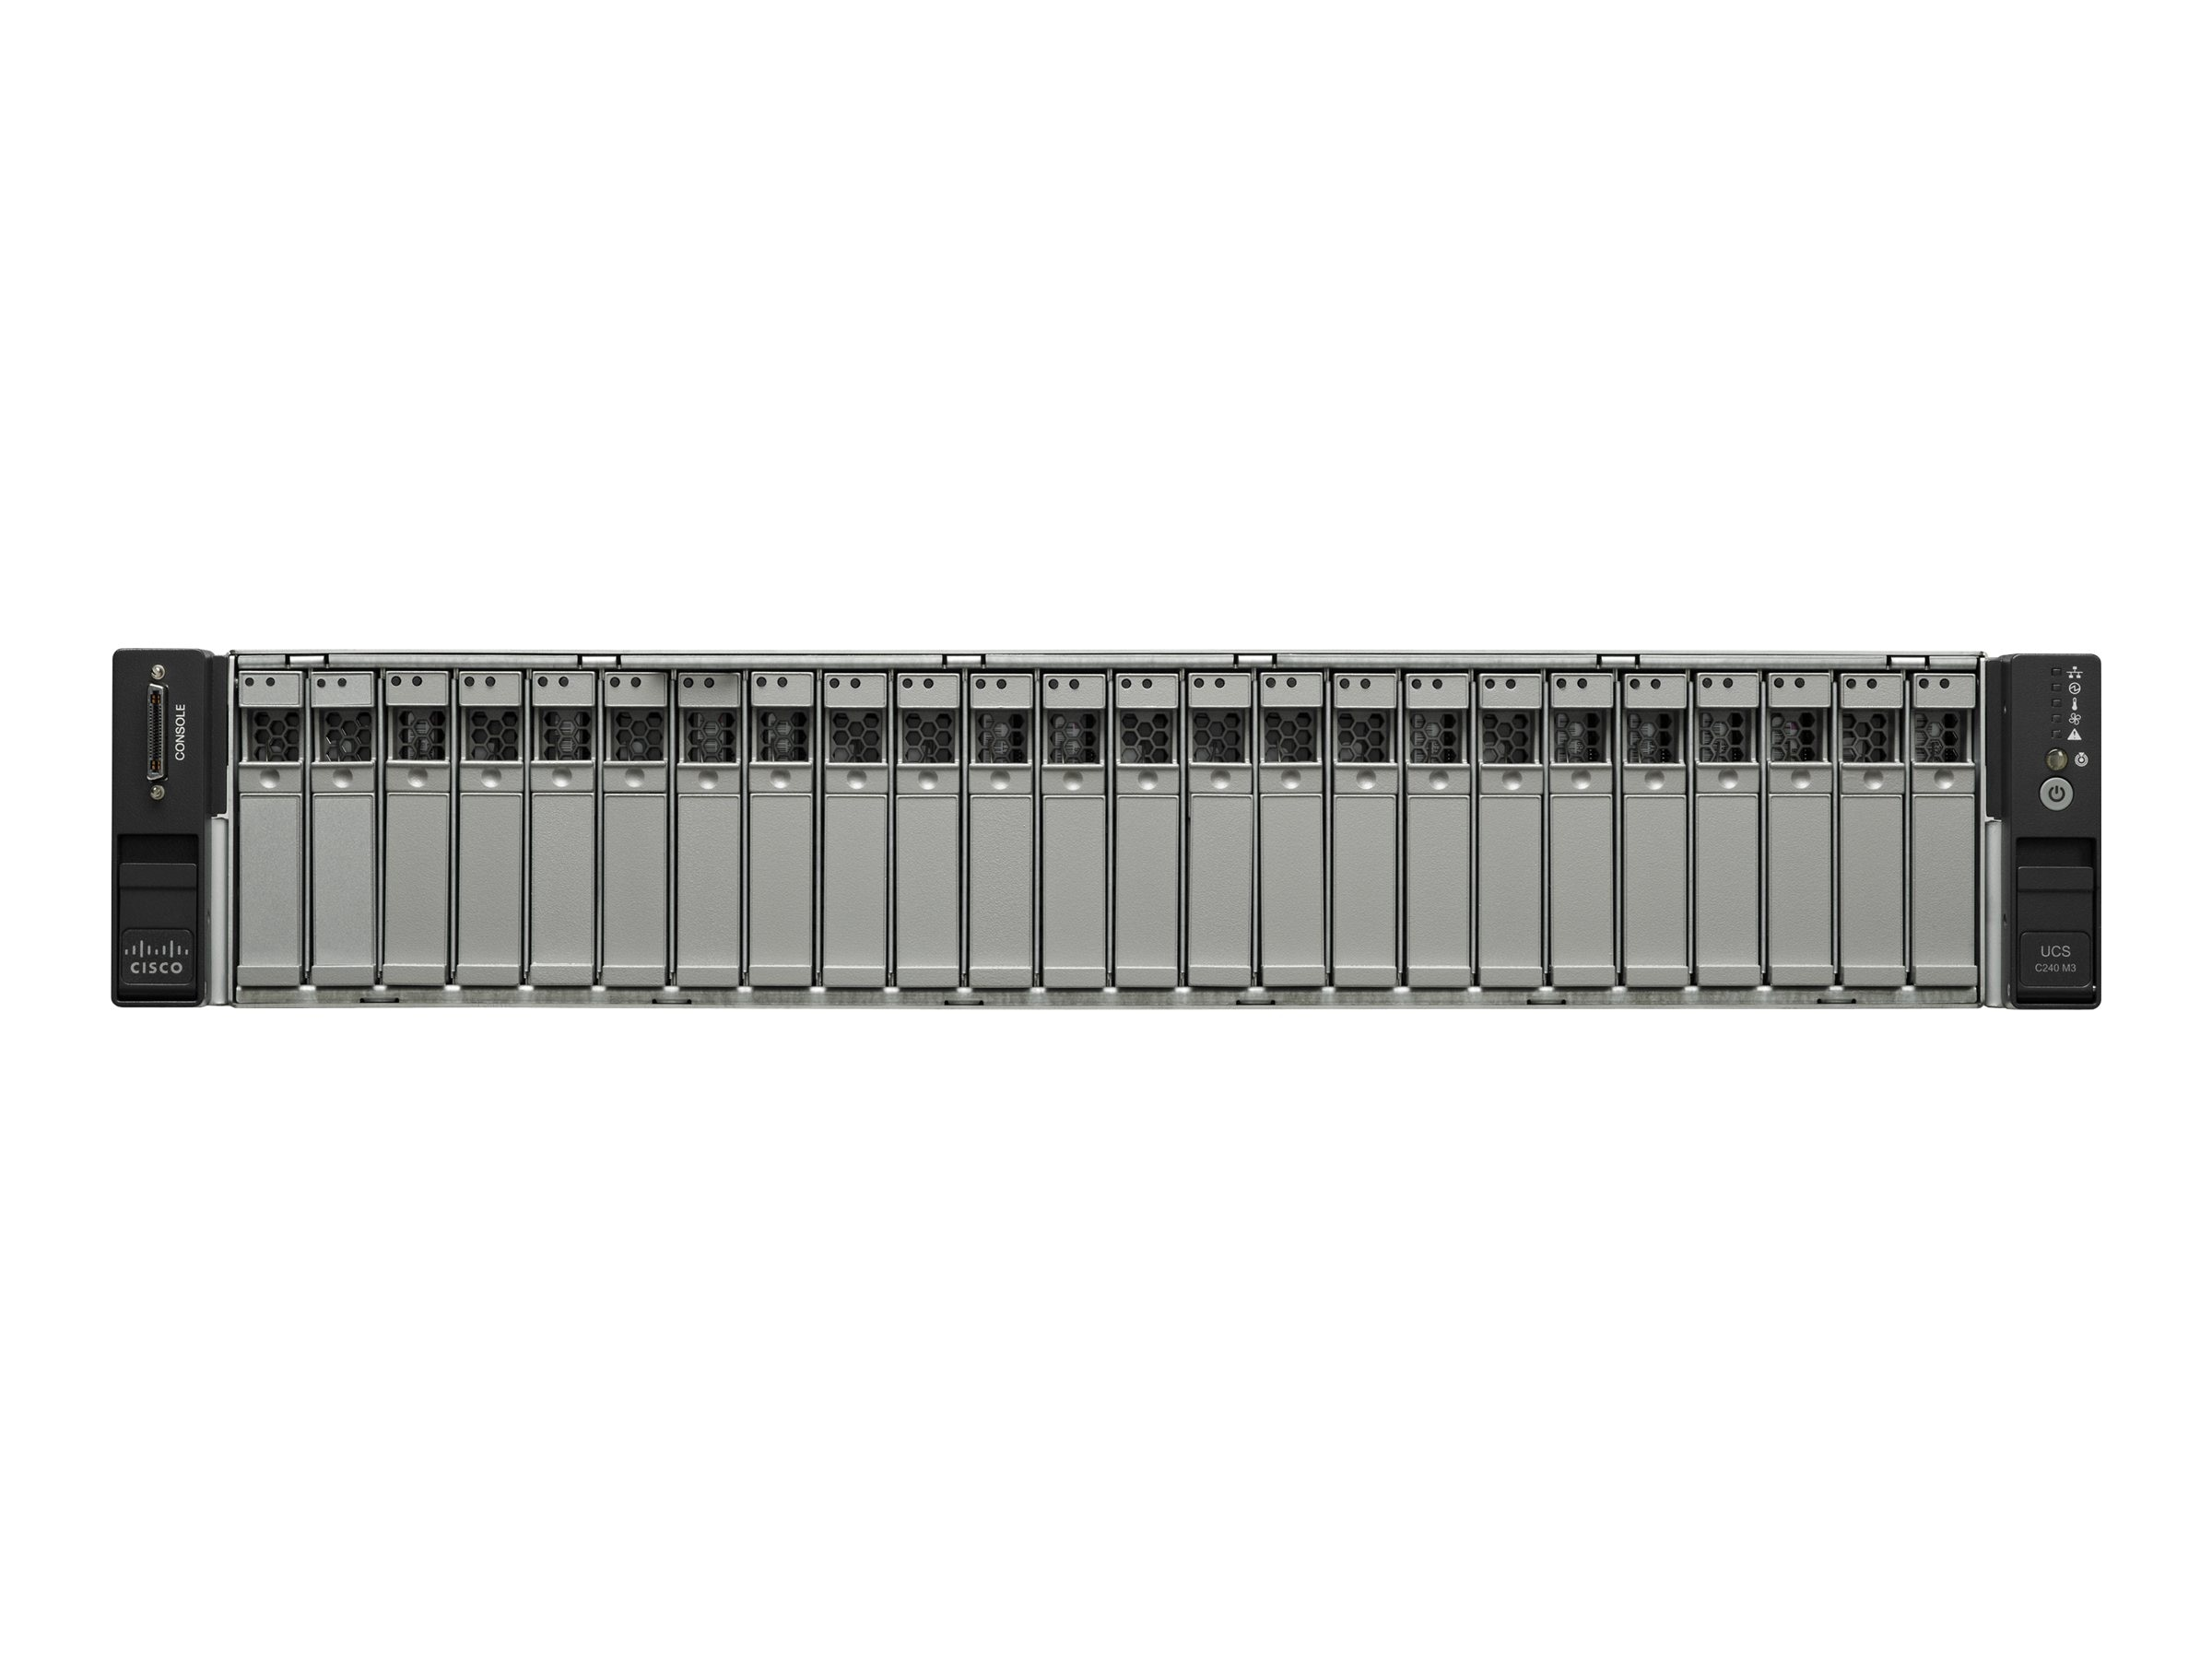 Cisco UCS C240 M3 2U RM (2x) Xeon 10C E5-2660 v2 2.2GHz 32GB 24x2.5 Bays 2x650W Rail Kit NoOS